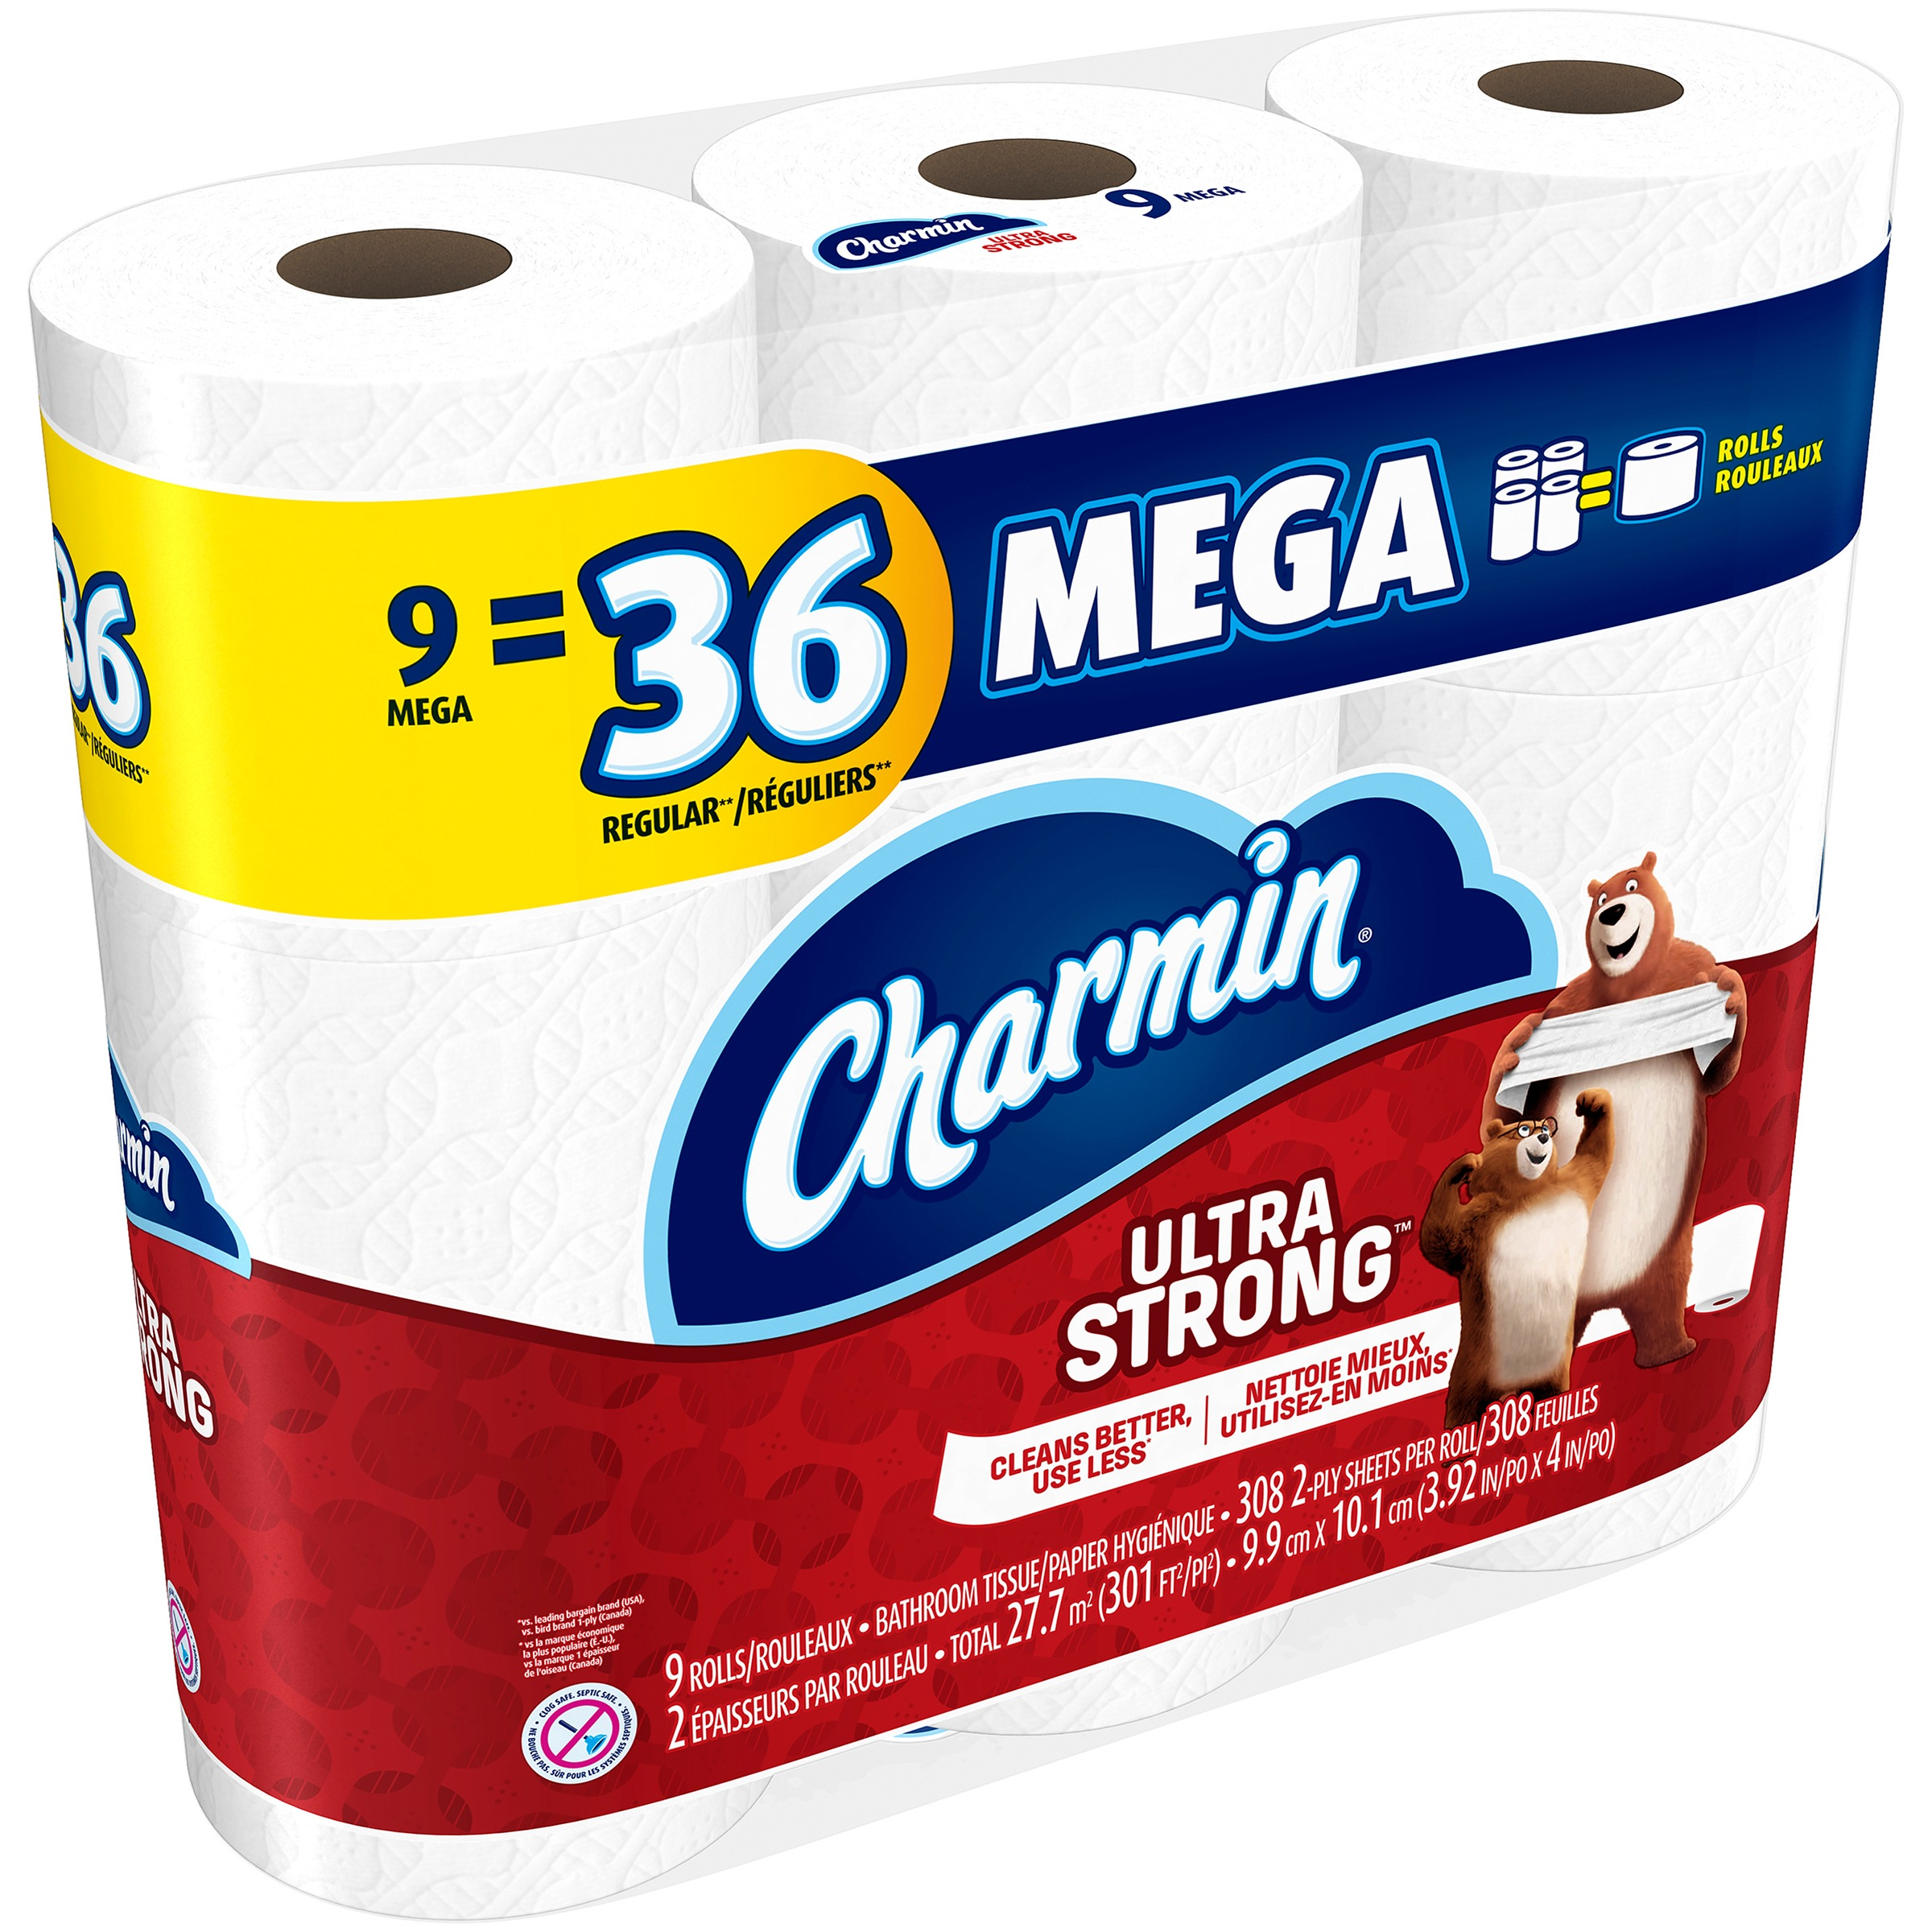 Charmin Ultra Strong Toilet Paper 9 Mega Rolls by Procter & Gamble Company